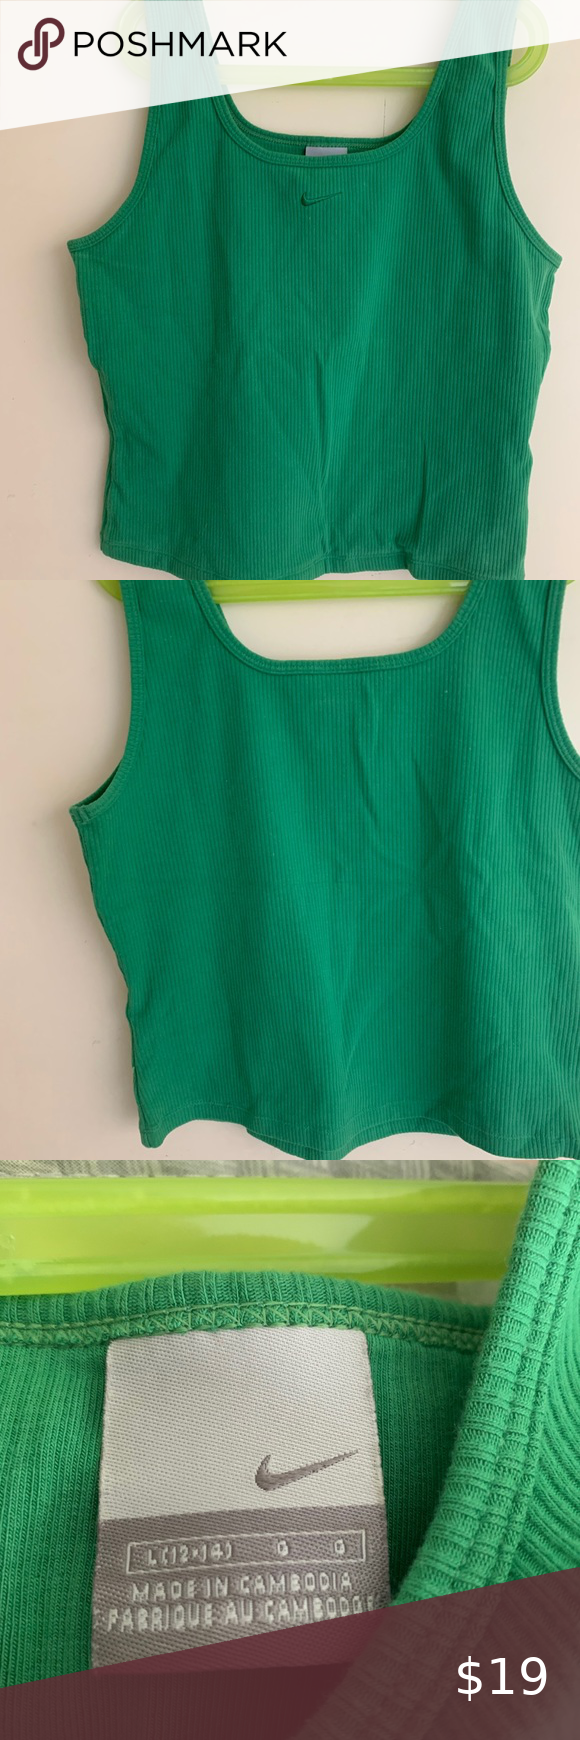 Nike Vintage Green Crop Top Cami Tank Top Great Condition Great Material Size L 12 14 Stretchy Material Wrinkles Not T Cami Crop Top Vintage Nike Tank Top Cami